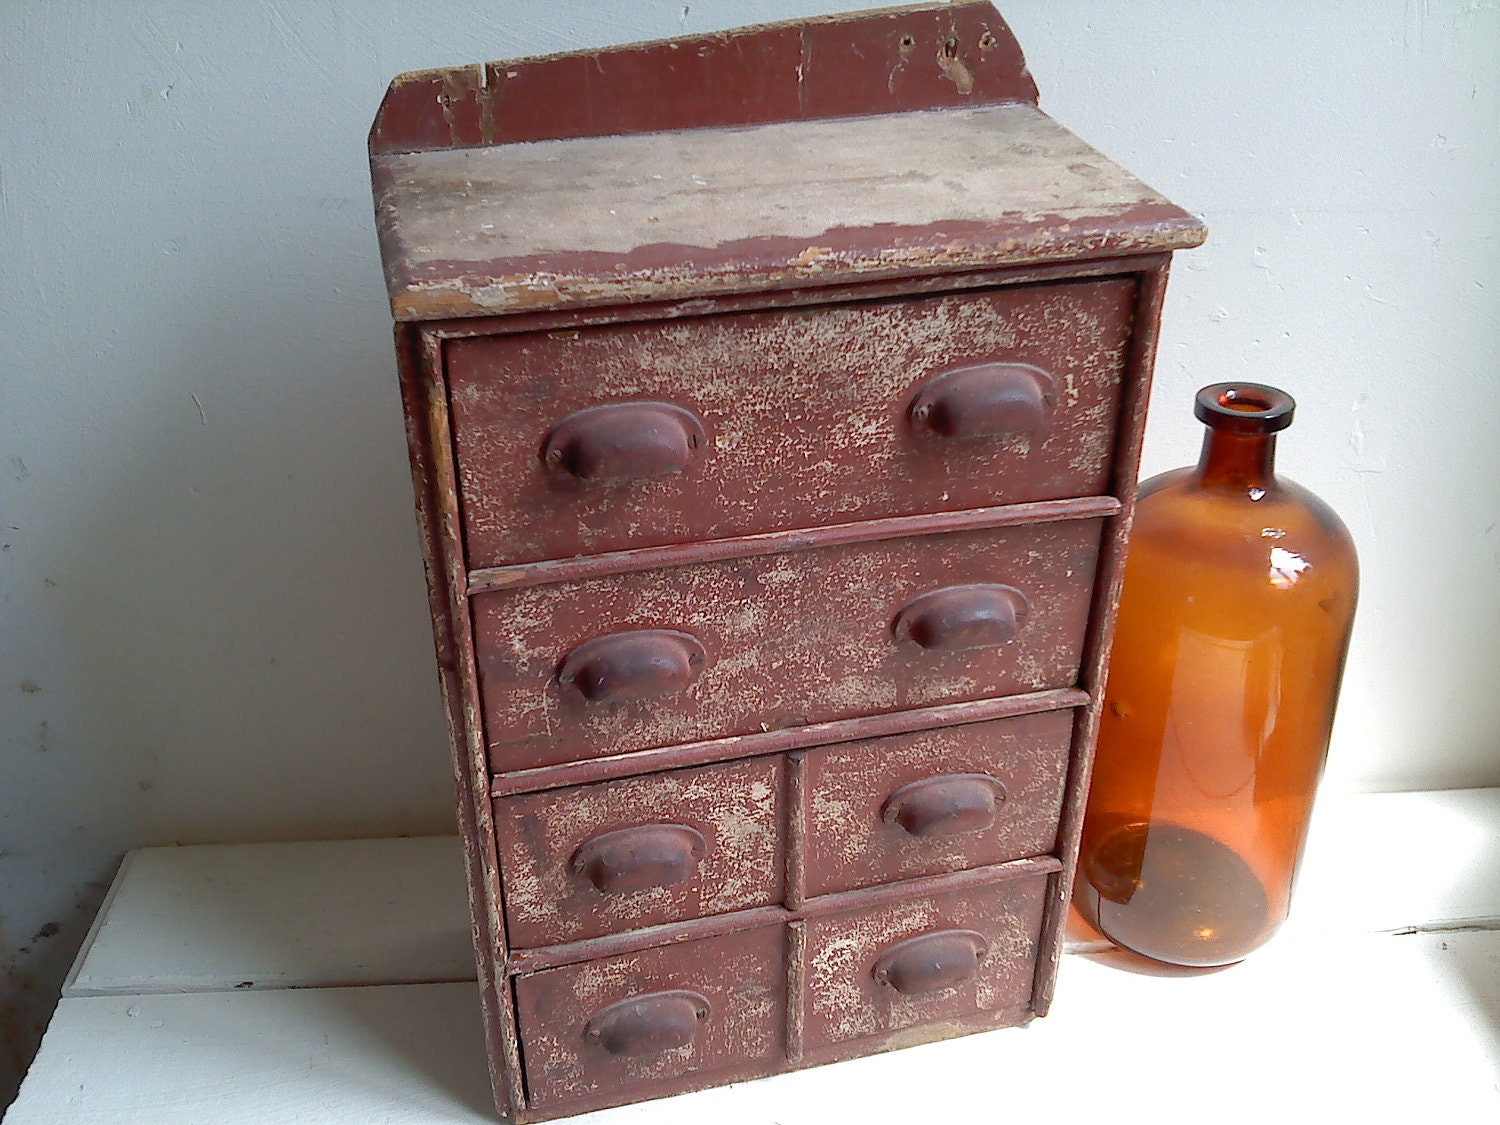 Primtive Apothecary Style Drawer Cabinet- Nice old Shabby Barn Red Paint - TrueNorthInteriorDes